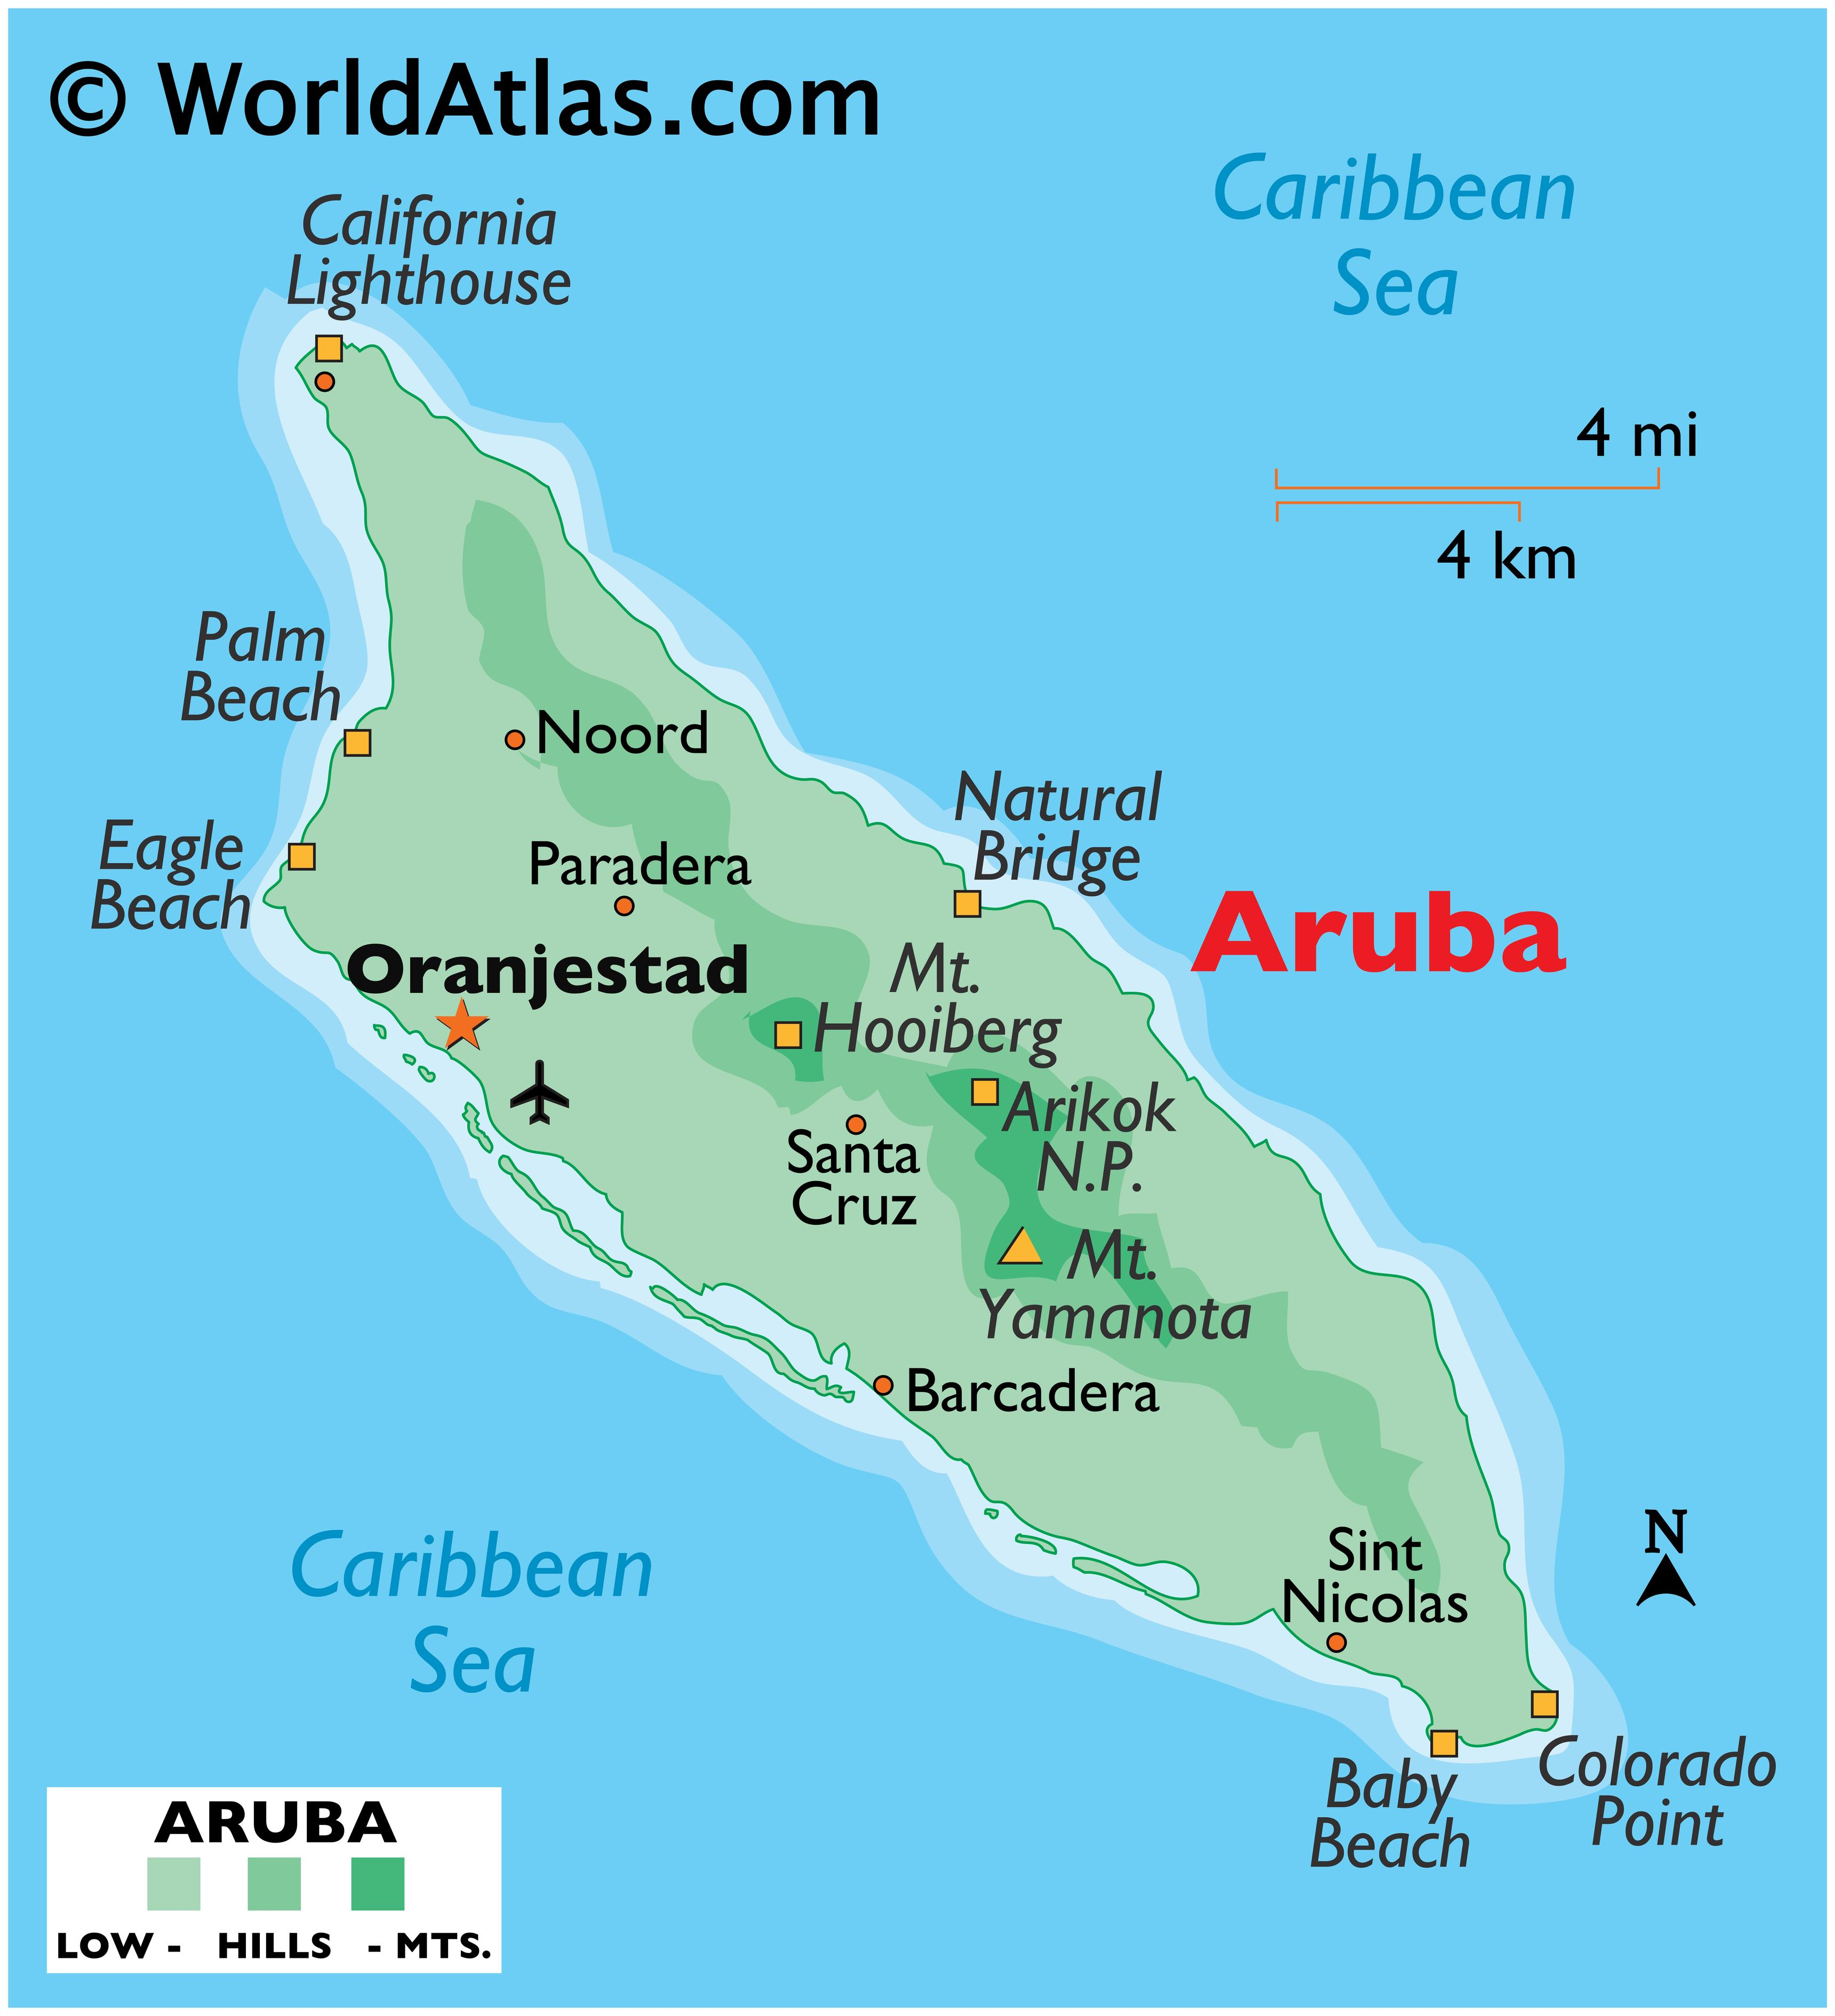 Physical Map of Aruba showing terrain, national parks, beaches, highest point, etc.